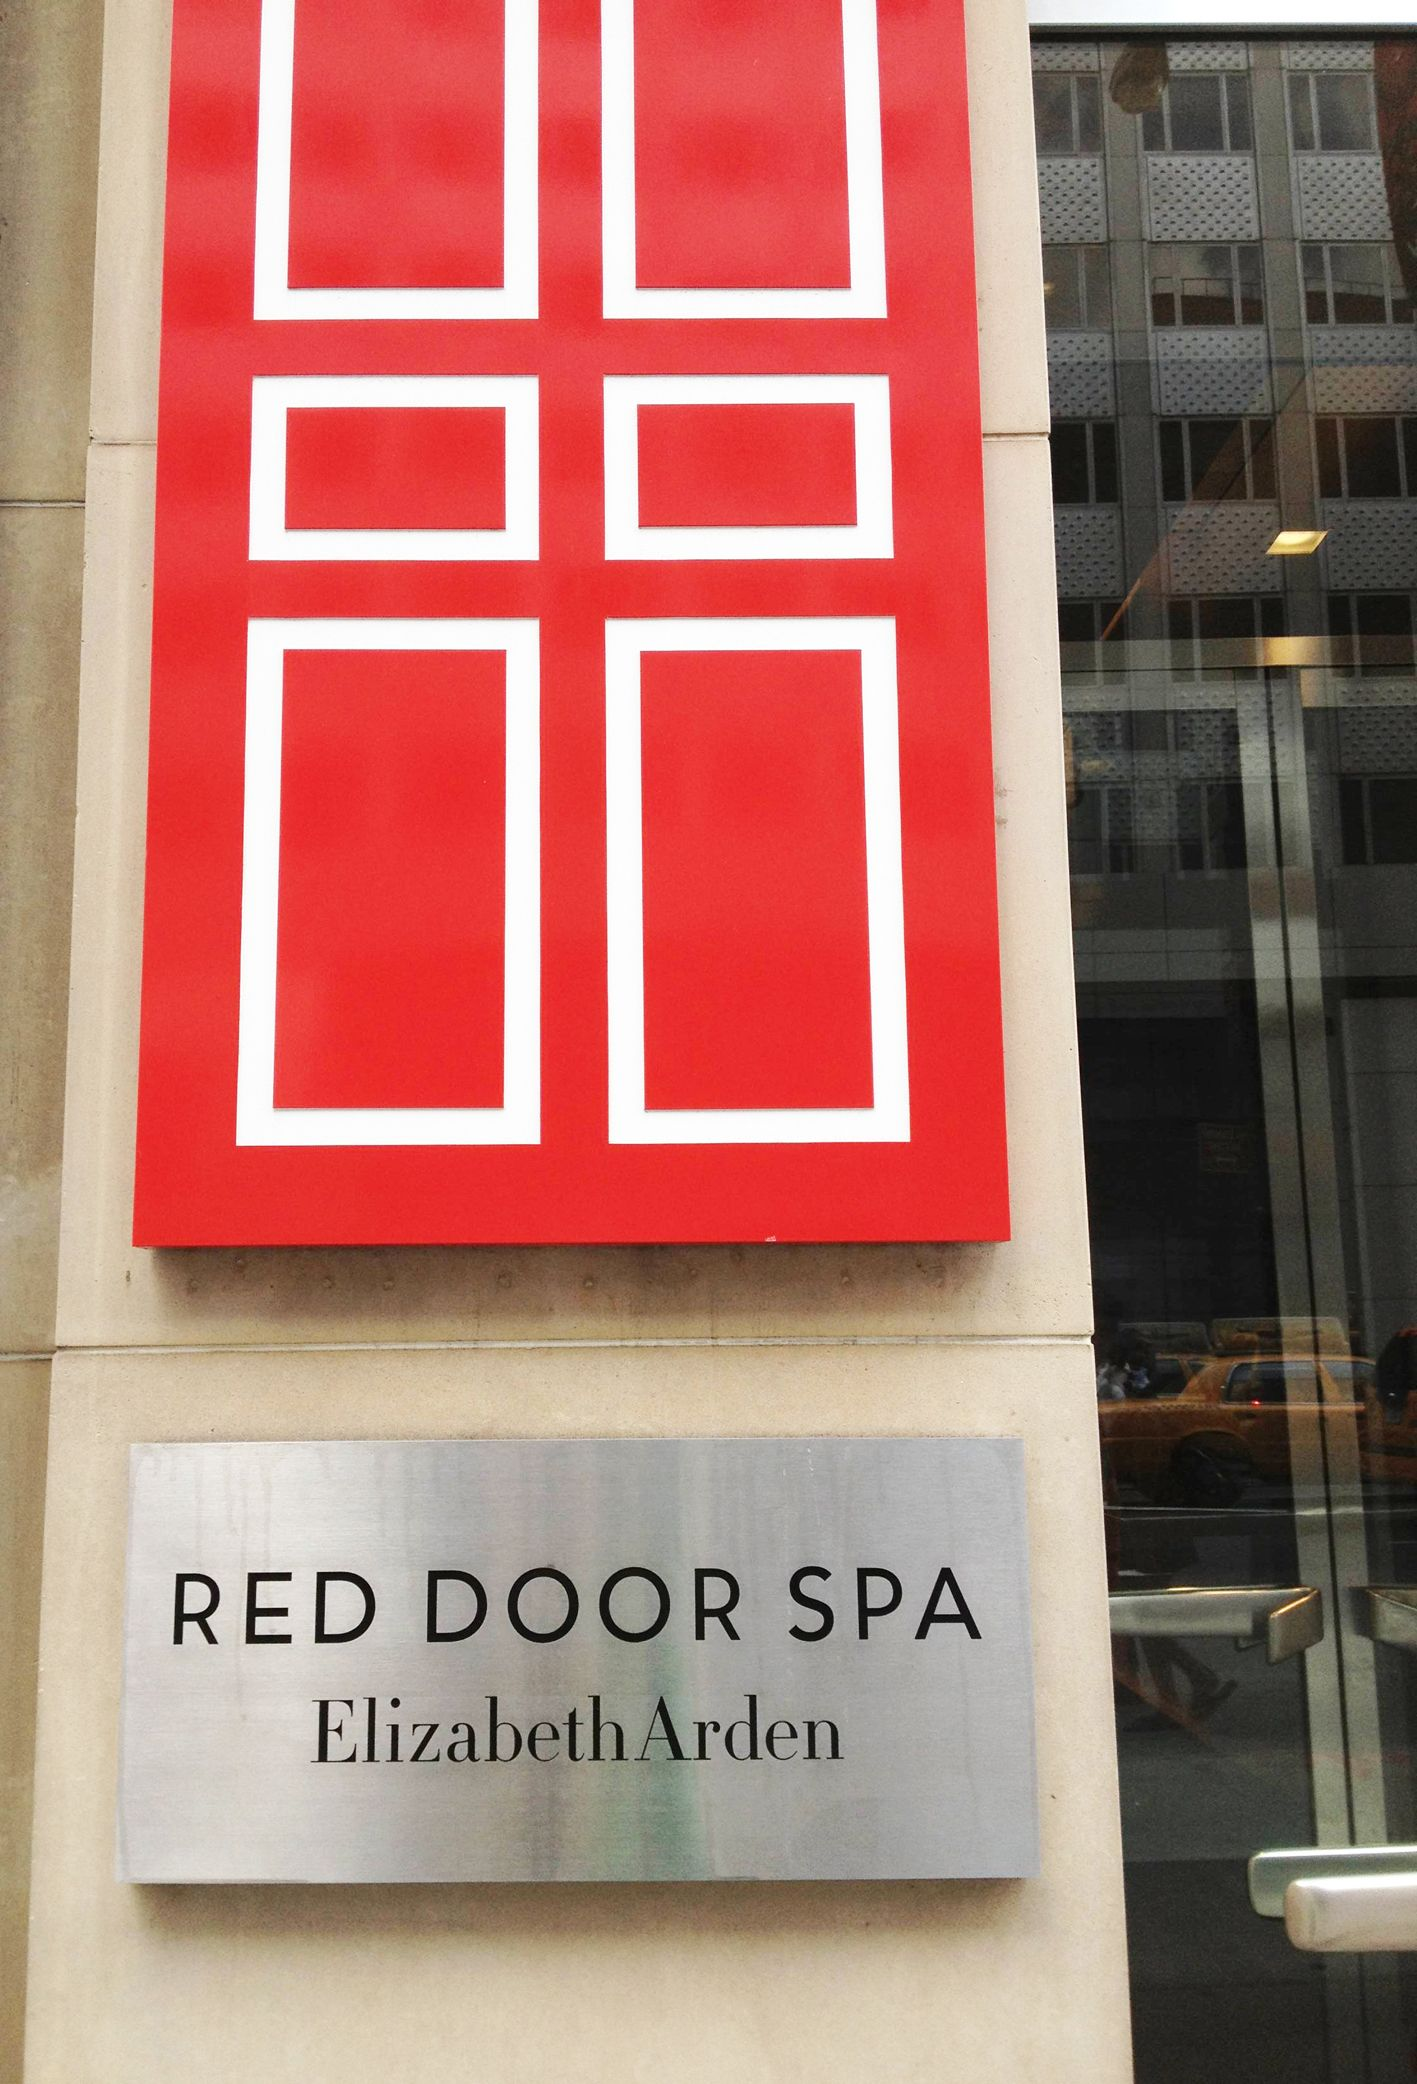 Red Door Spa Always Love To Get My Massages At One Of There